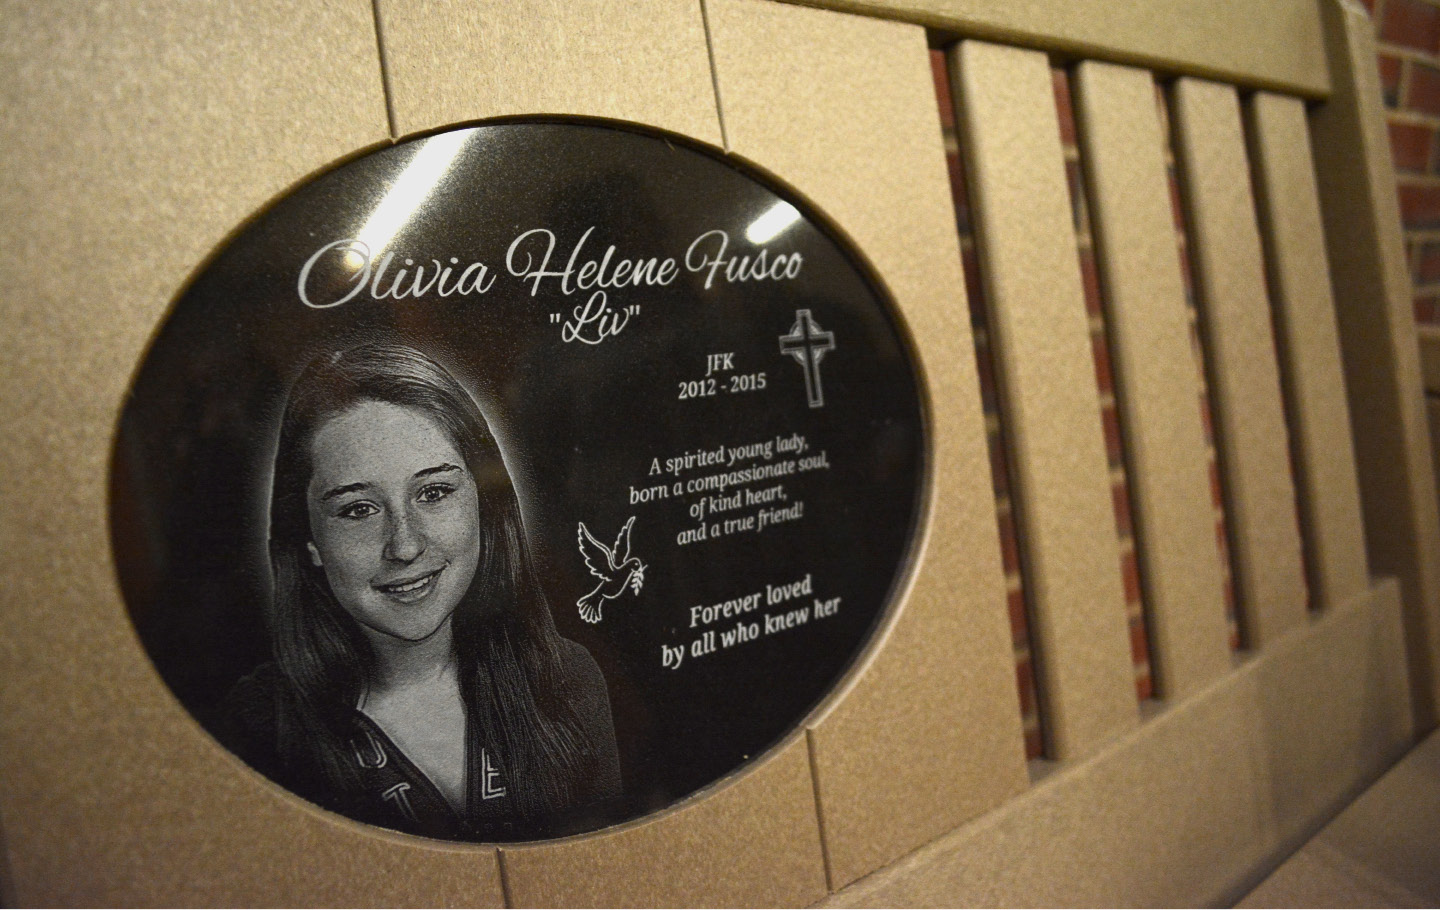 A bench dedicated to Olivia Fusco at John F. Kennedy Middle School on Friday, Jan. 22, 2016. | Bryan Lipiner, Record-Journal